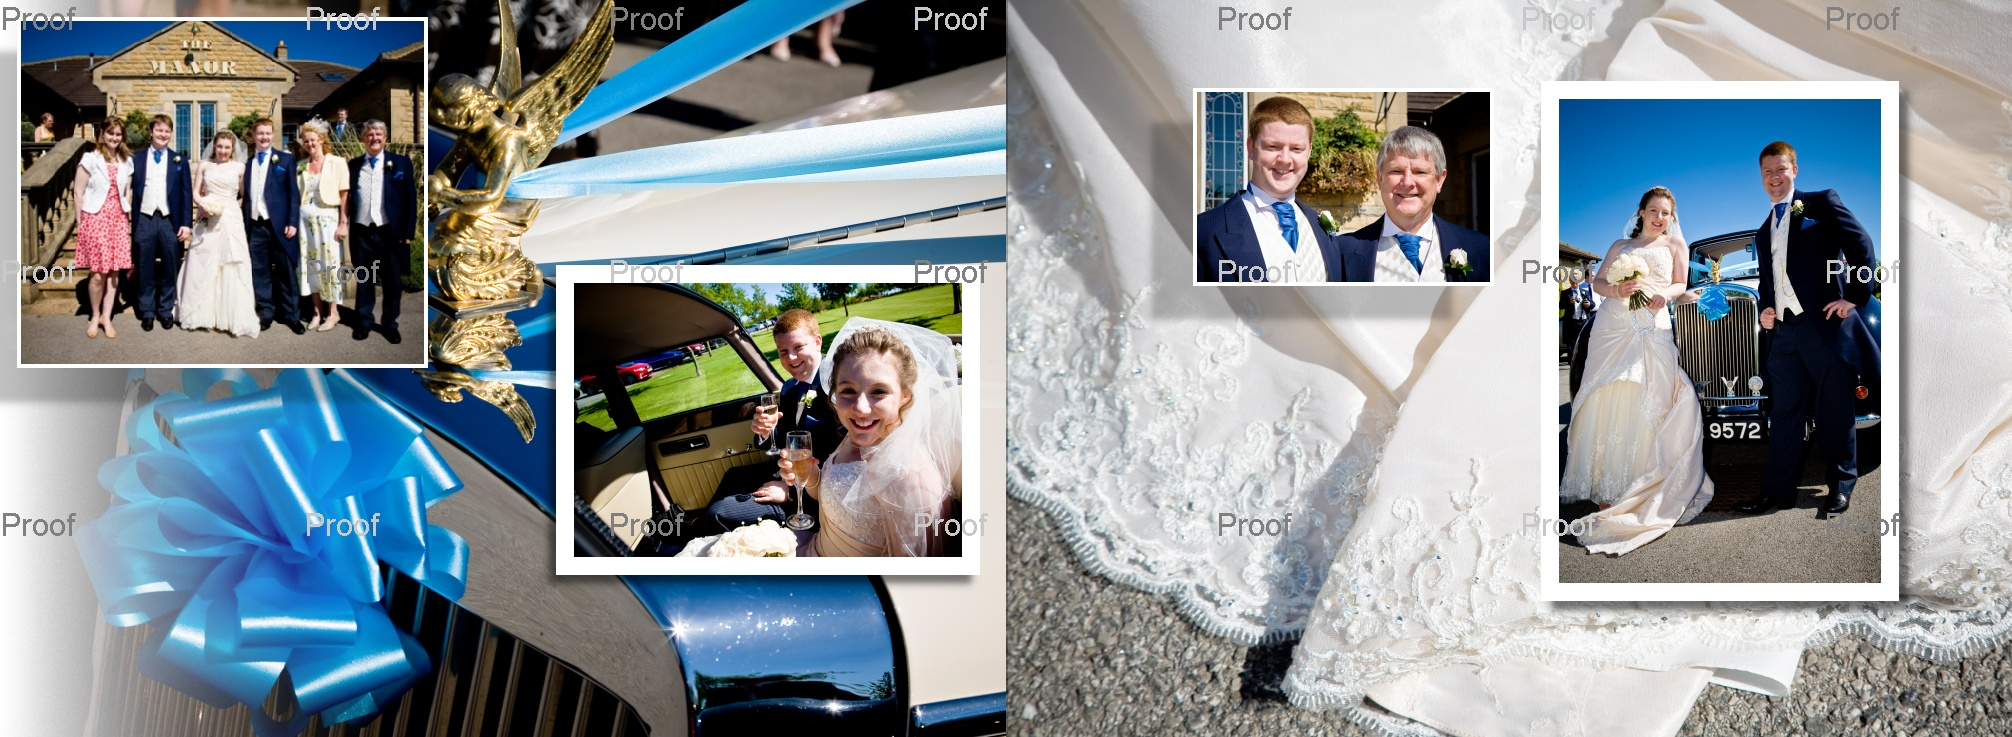 pages 34-35 wedding storybook - arrival at wedding reception venue in West Yorkshire - Drighlington Golf Club